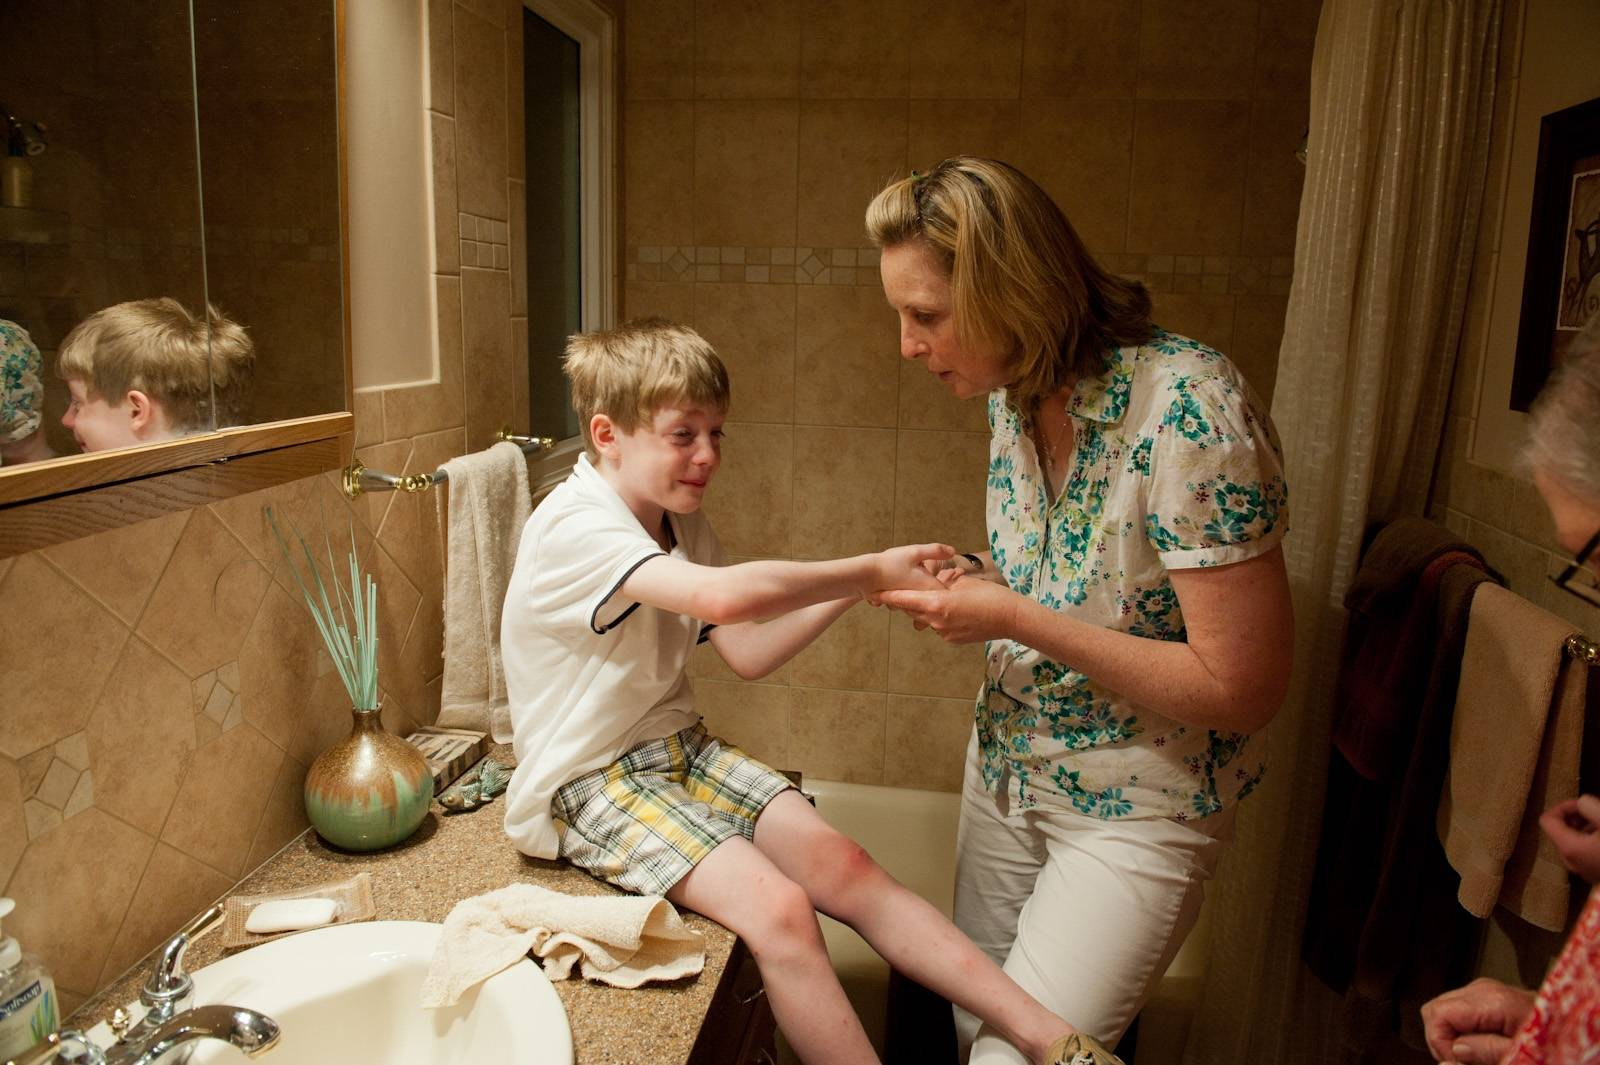 Photo: A mother tends to her son's scraped hand.